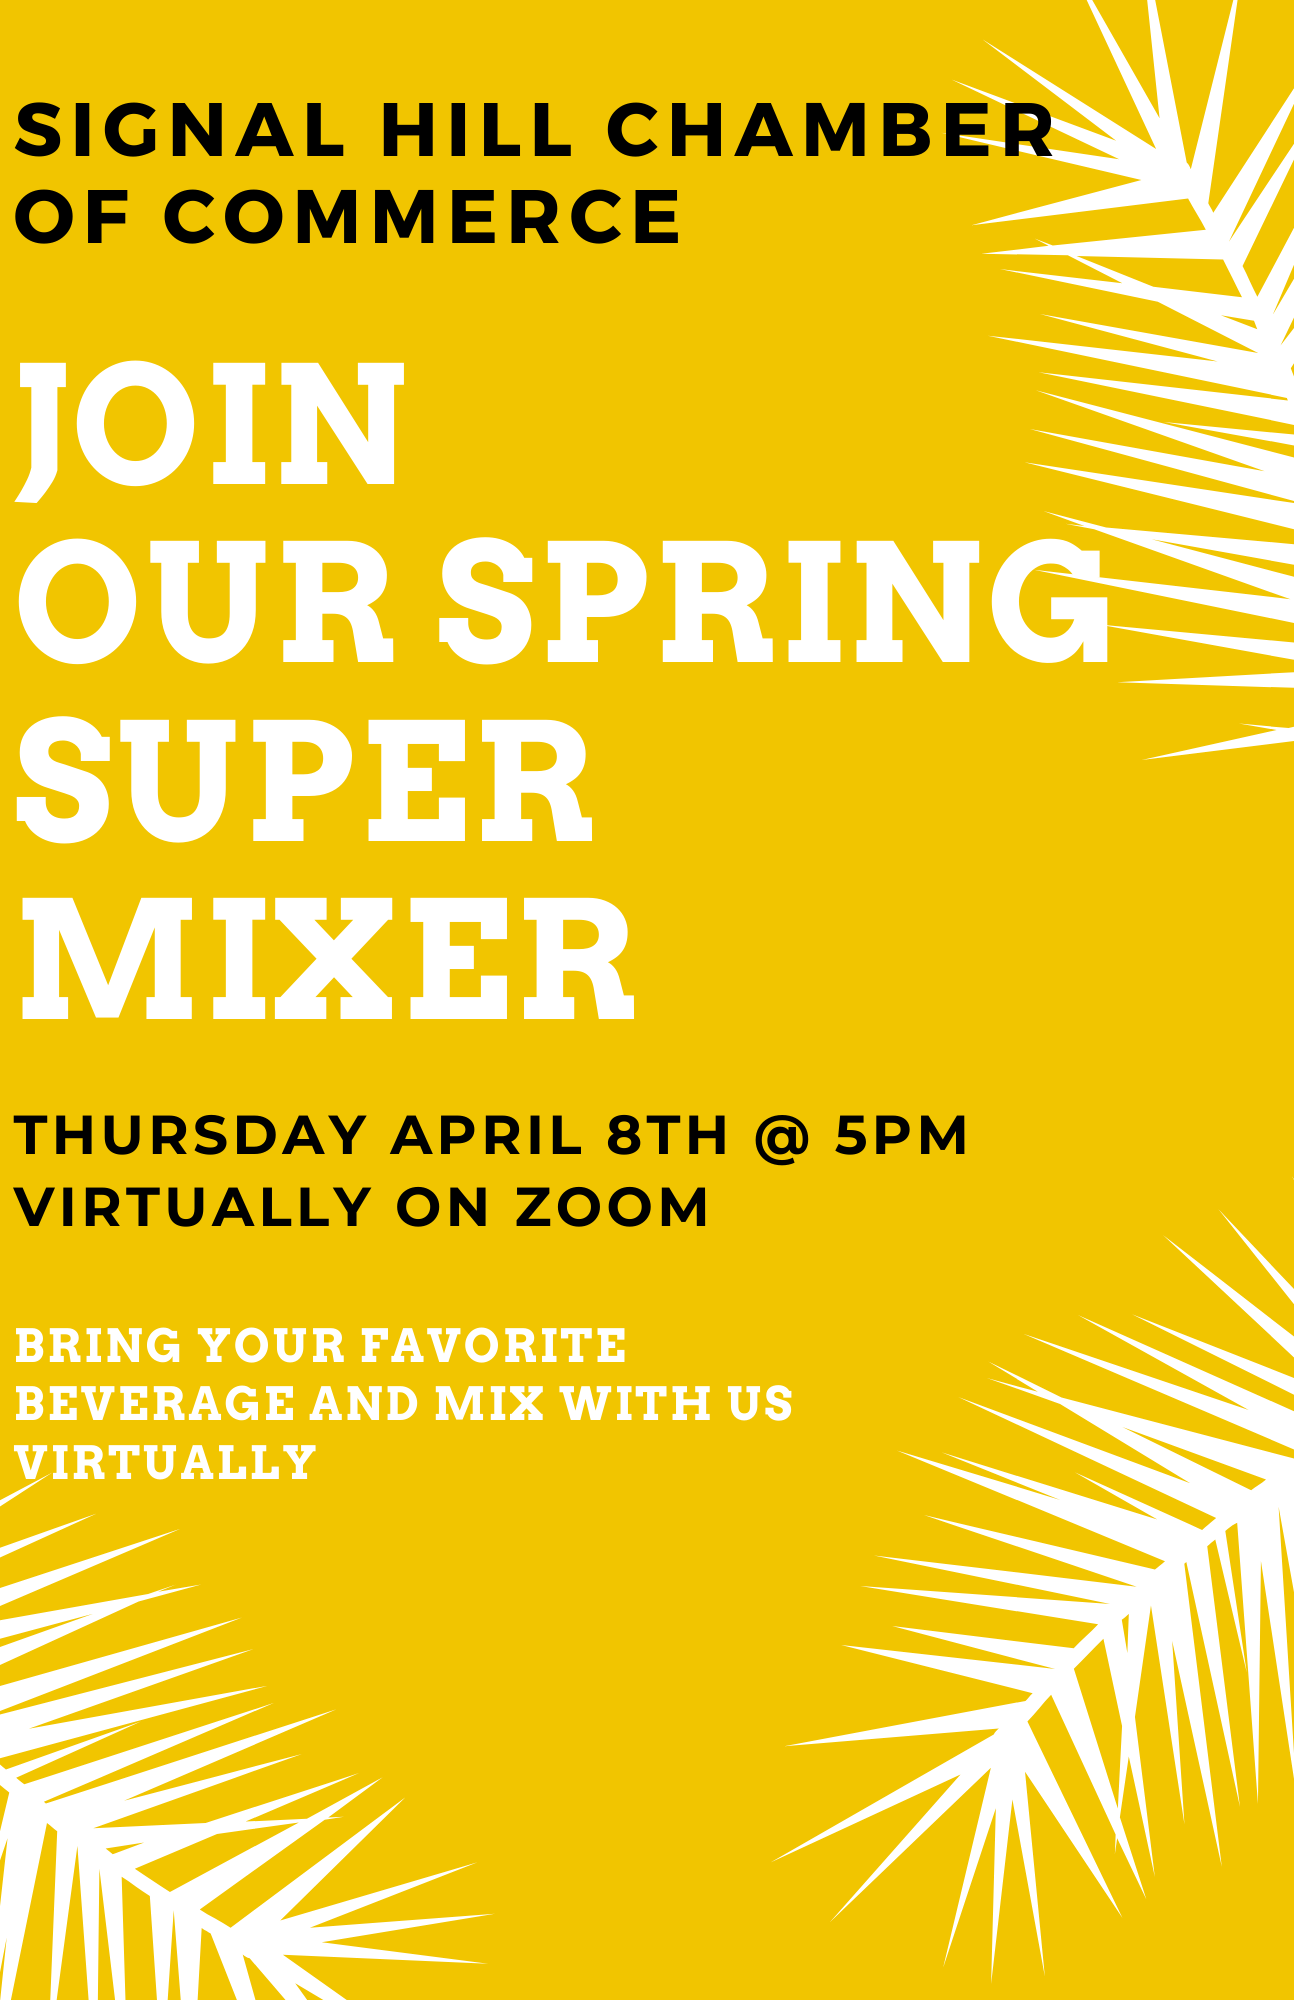 Signal Hill Chamber of Commerce SPRING SUPER MIXER